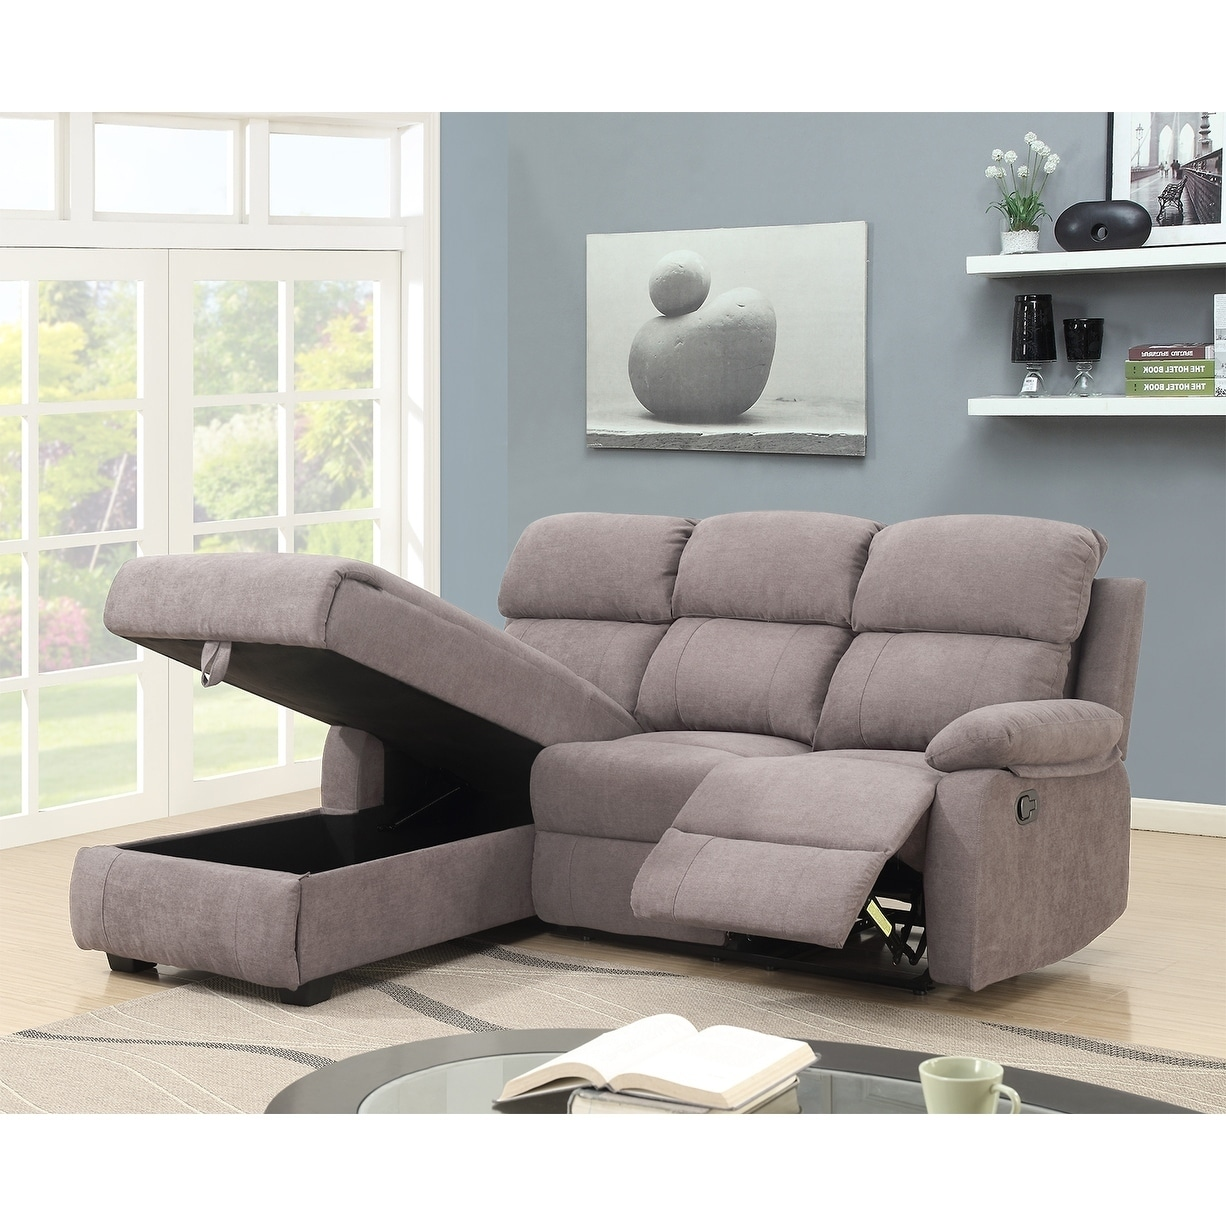 Melody Recliner L Shaped Corner Sectional Sofa With Storage 66 X 80 40 On Free Shipping Today 24015154